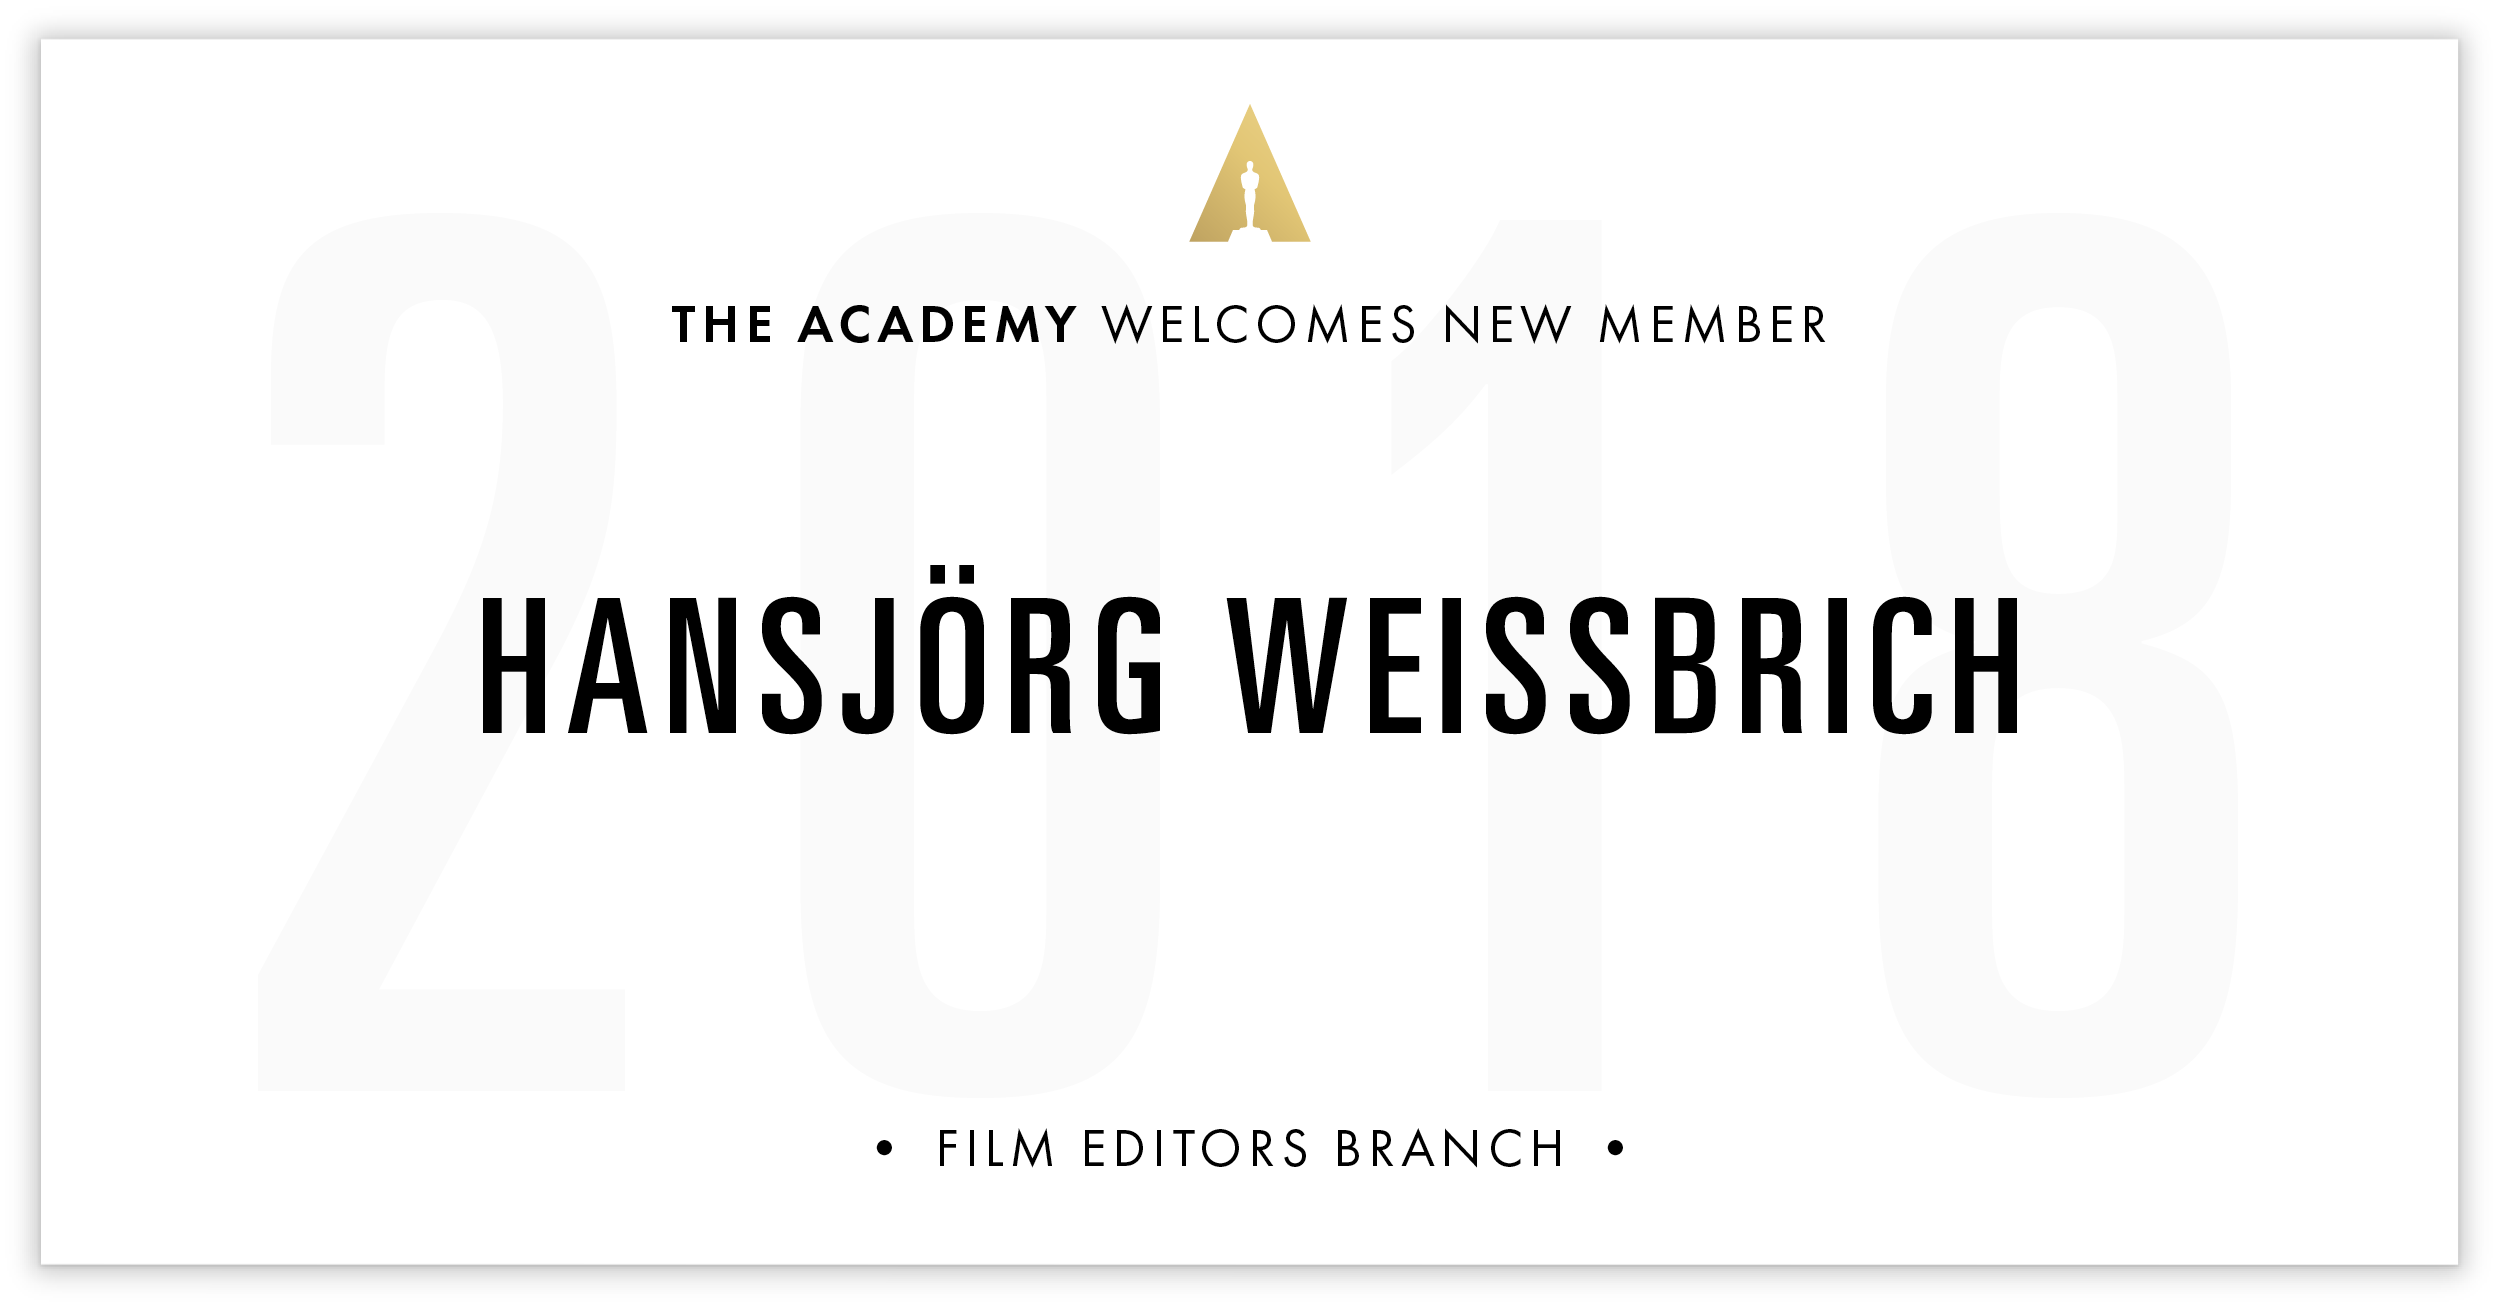 Hansjörg Weissbrich is invited!